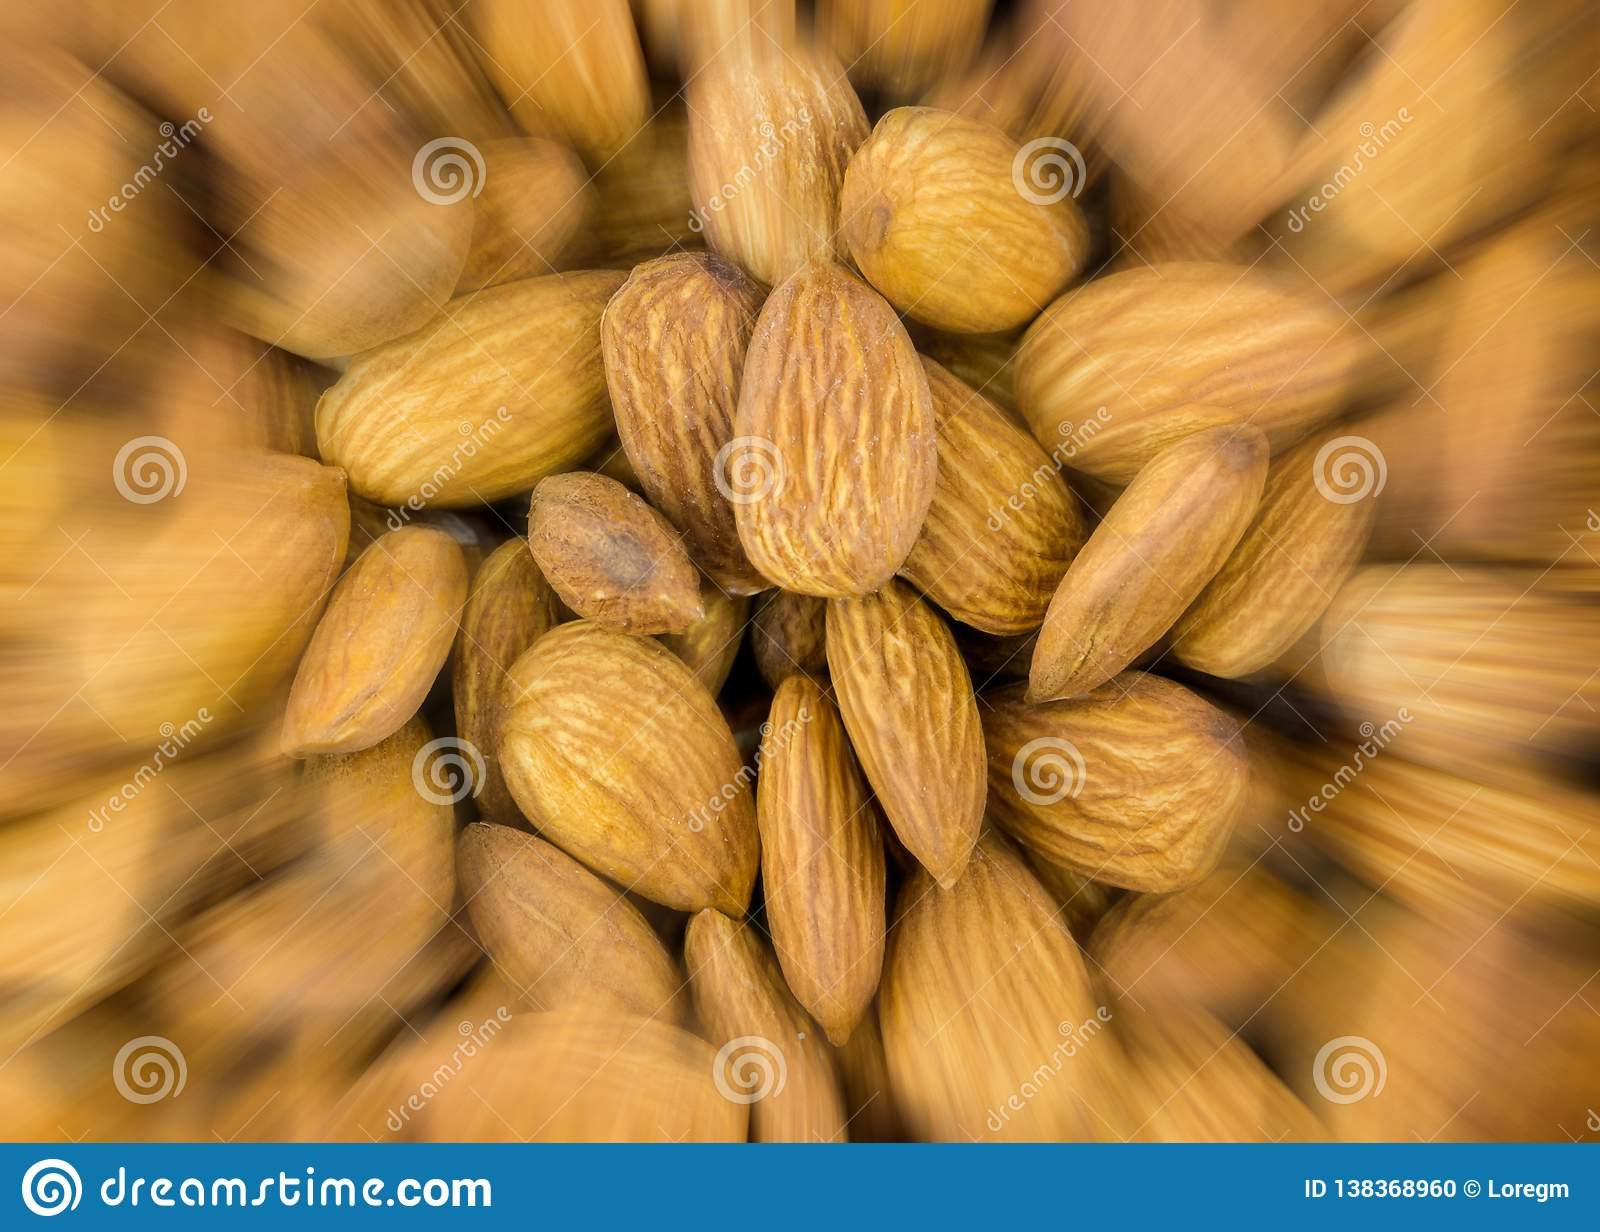 Abstract background speed blur acceleration nut almond culinary pattern closeup brown delicious snack